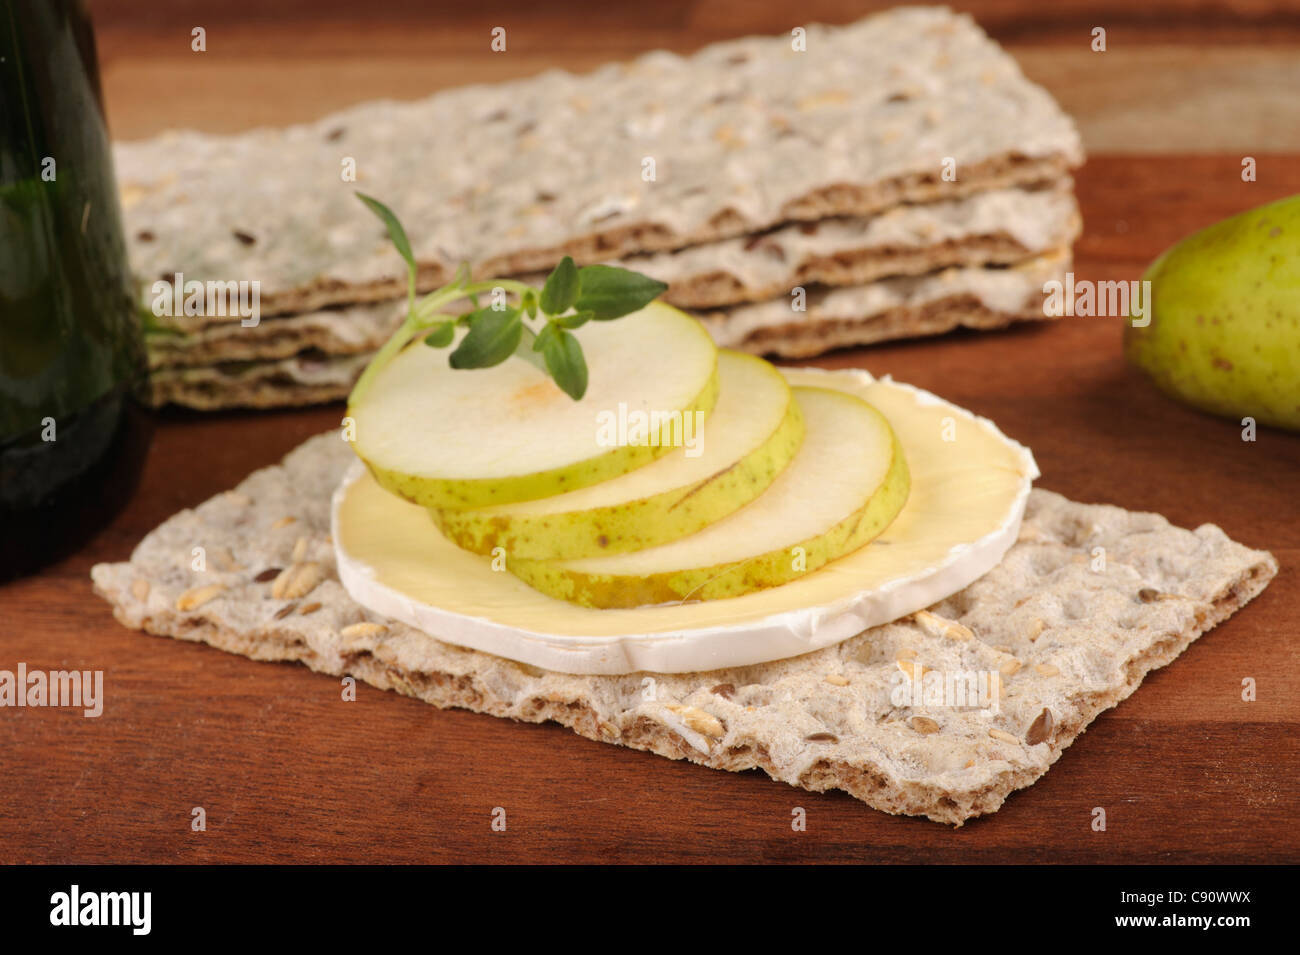 Crispbread with blue cheese and pear slices - Stock Image